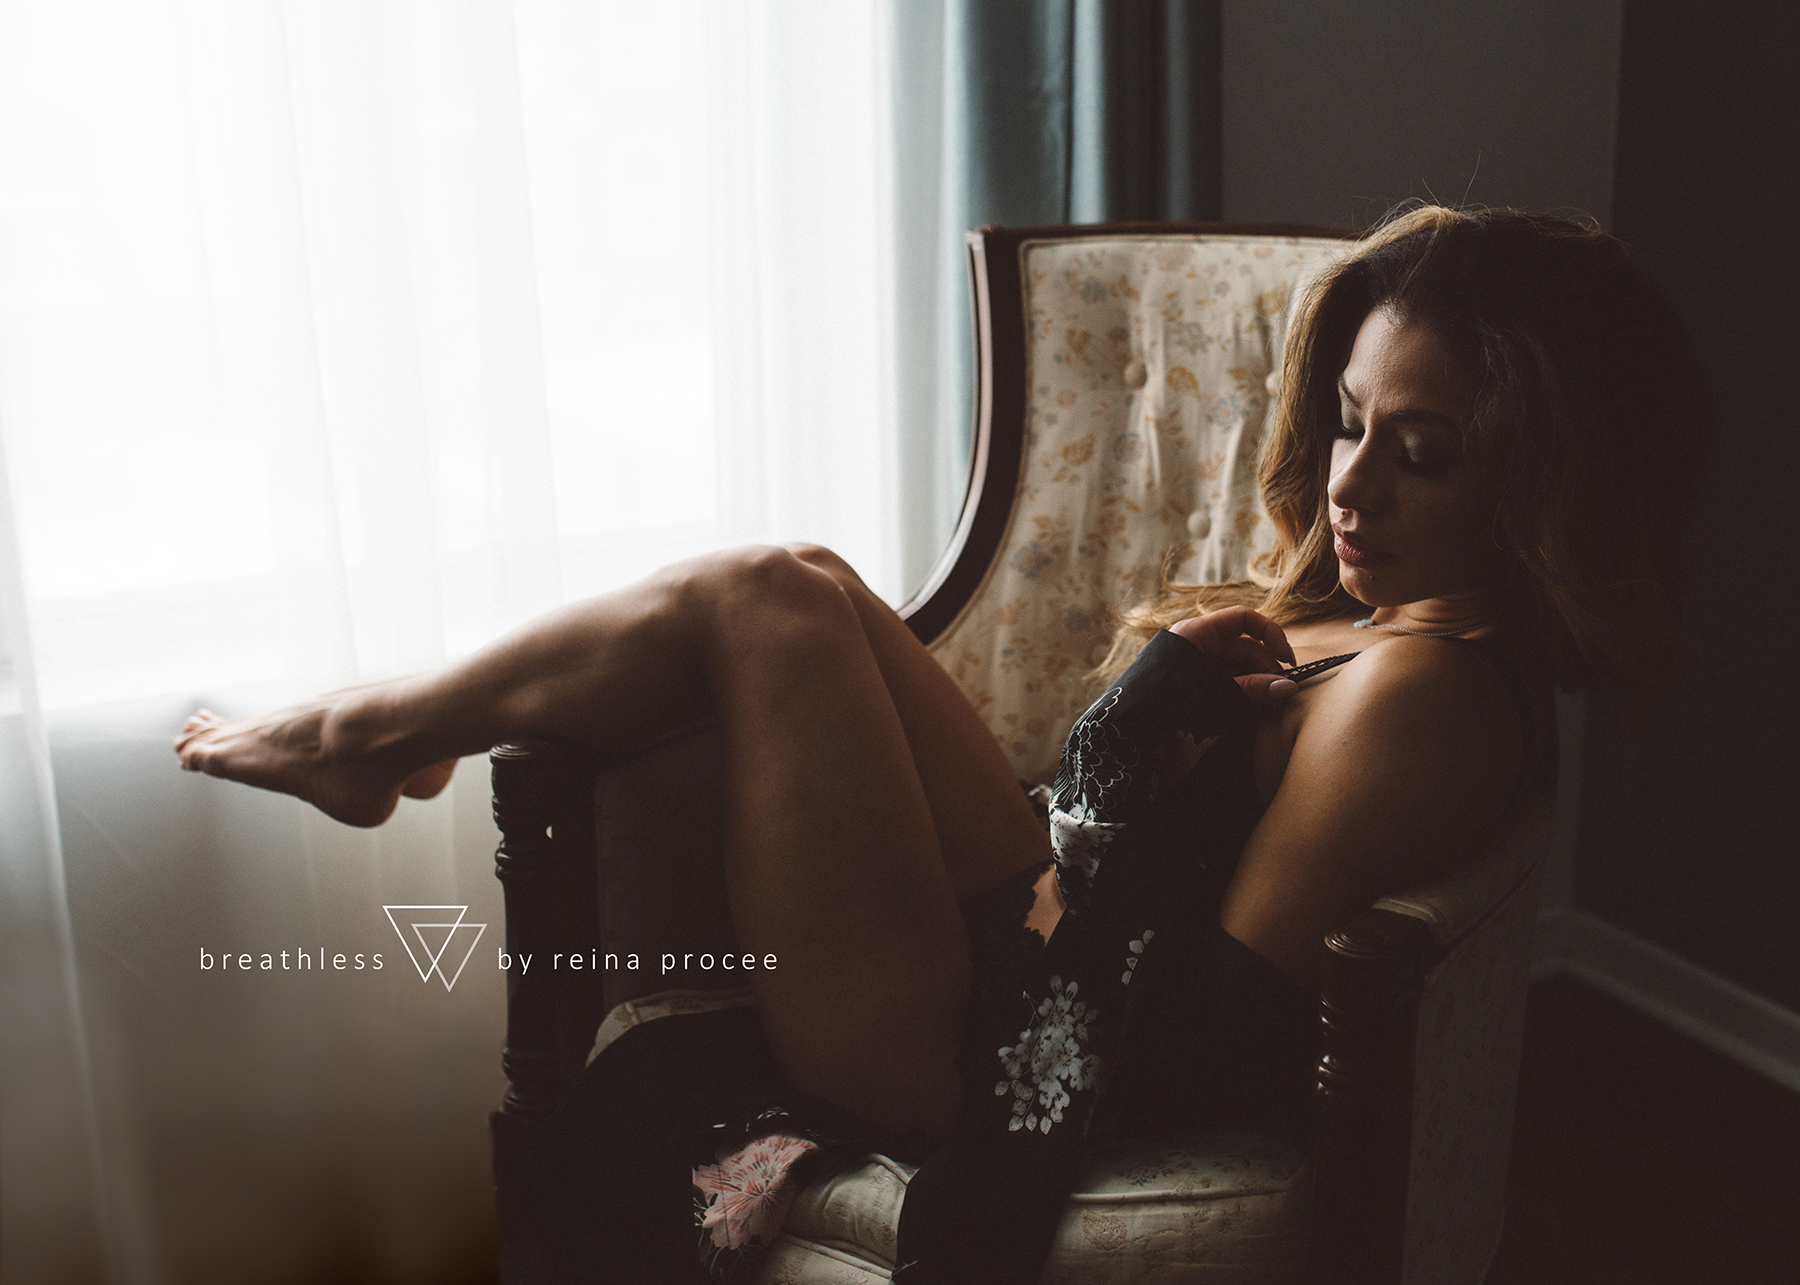 montreal-portraits-head-shots-boudoir-erotic-tasteful-beauty-photos-photography-pictures-37.png